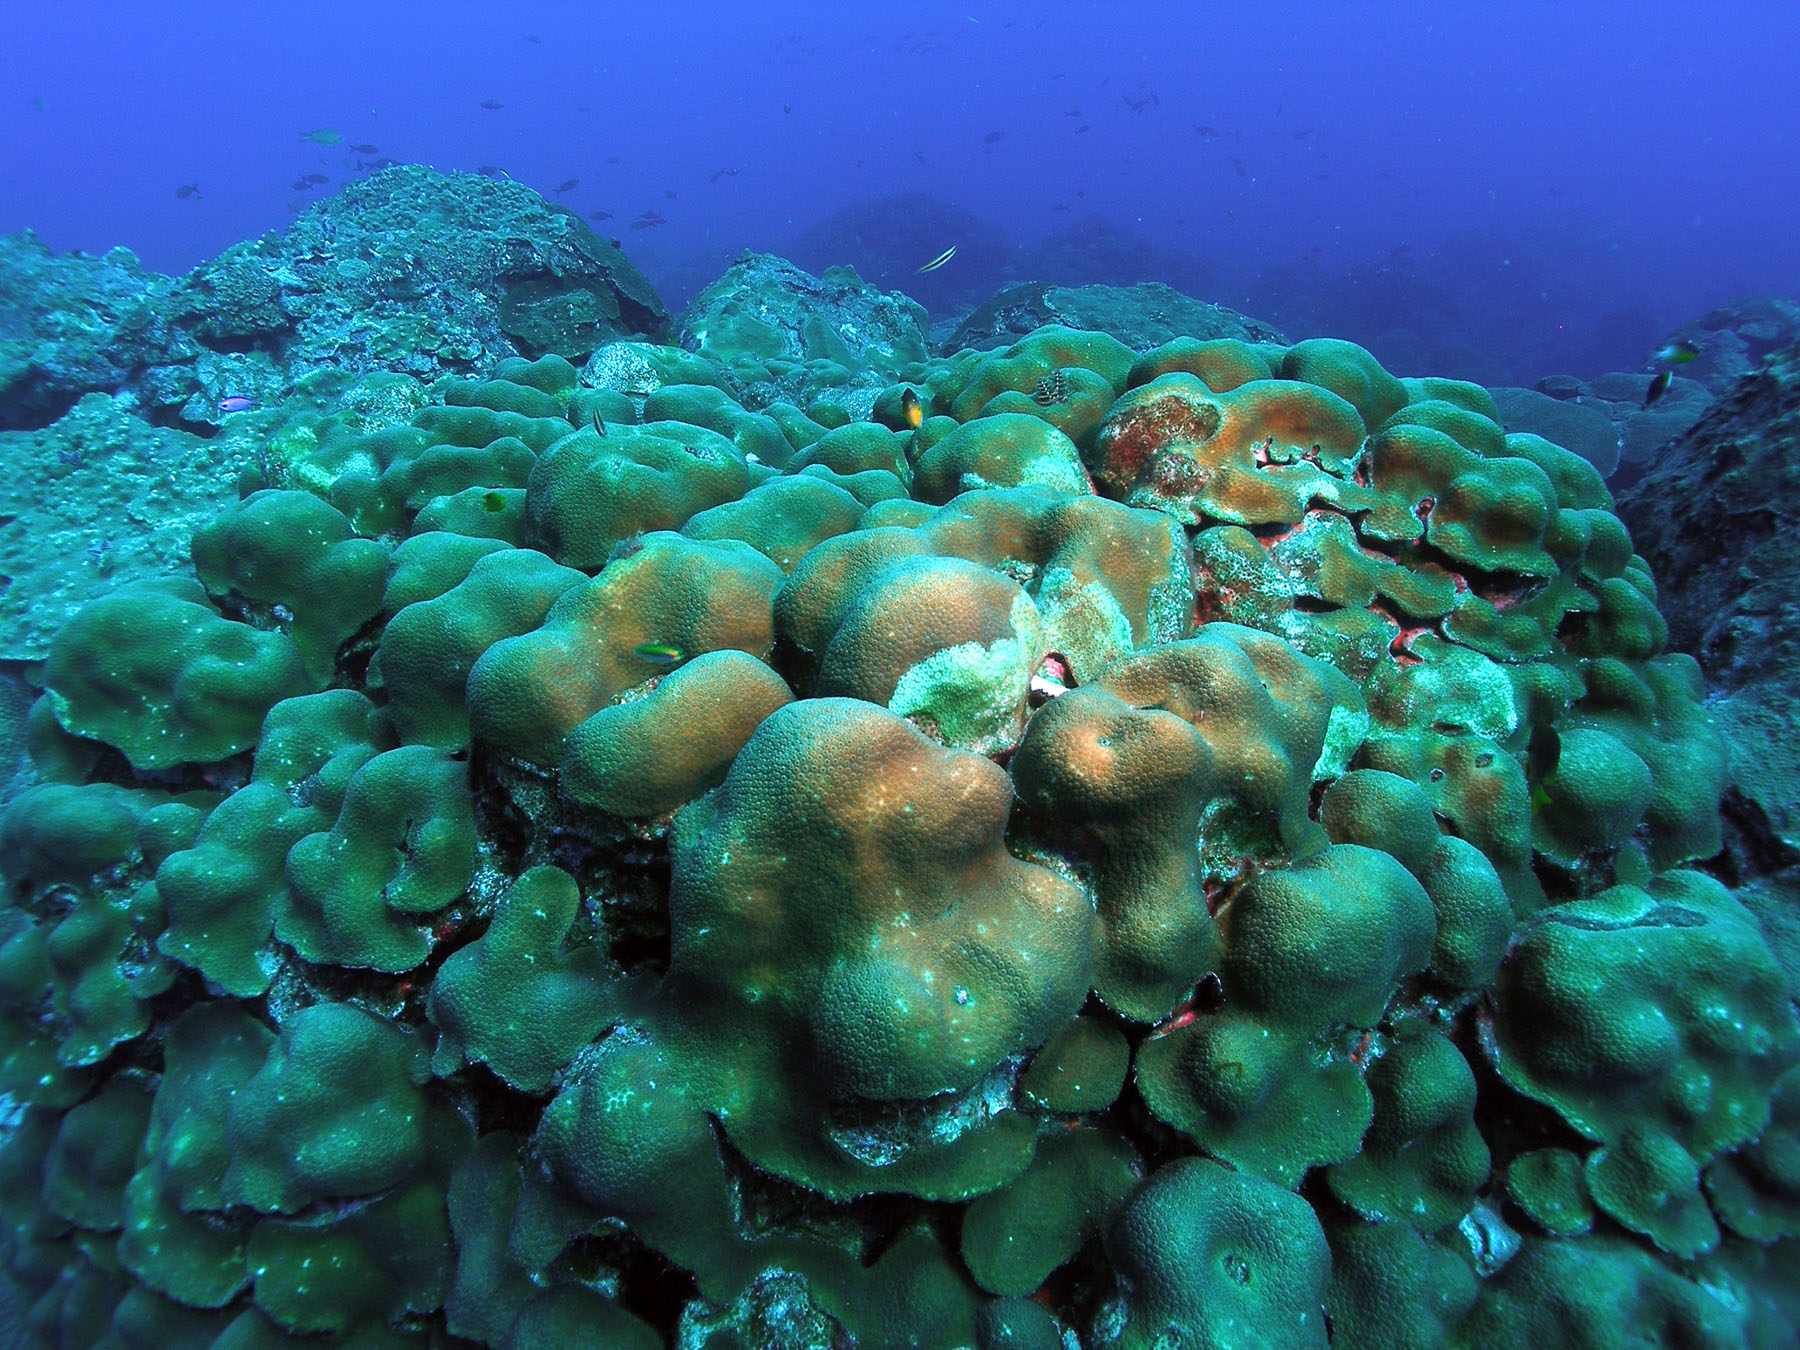 Corals survive and thrive after disasters